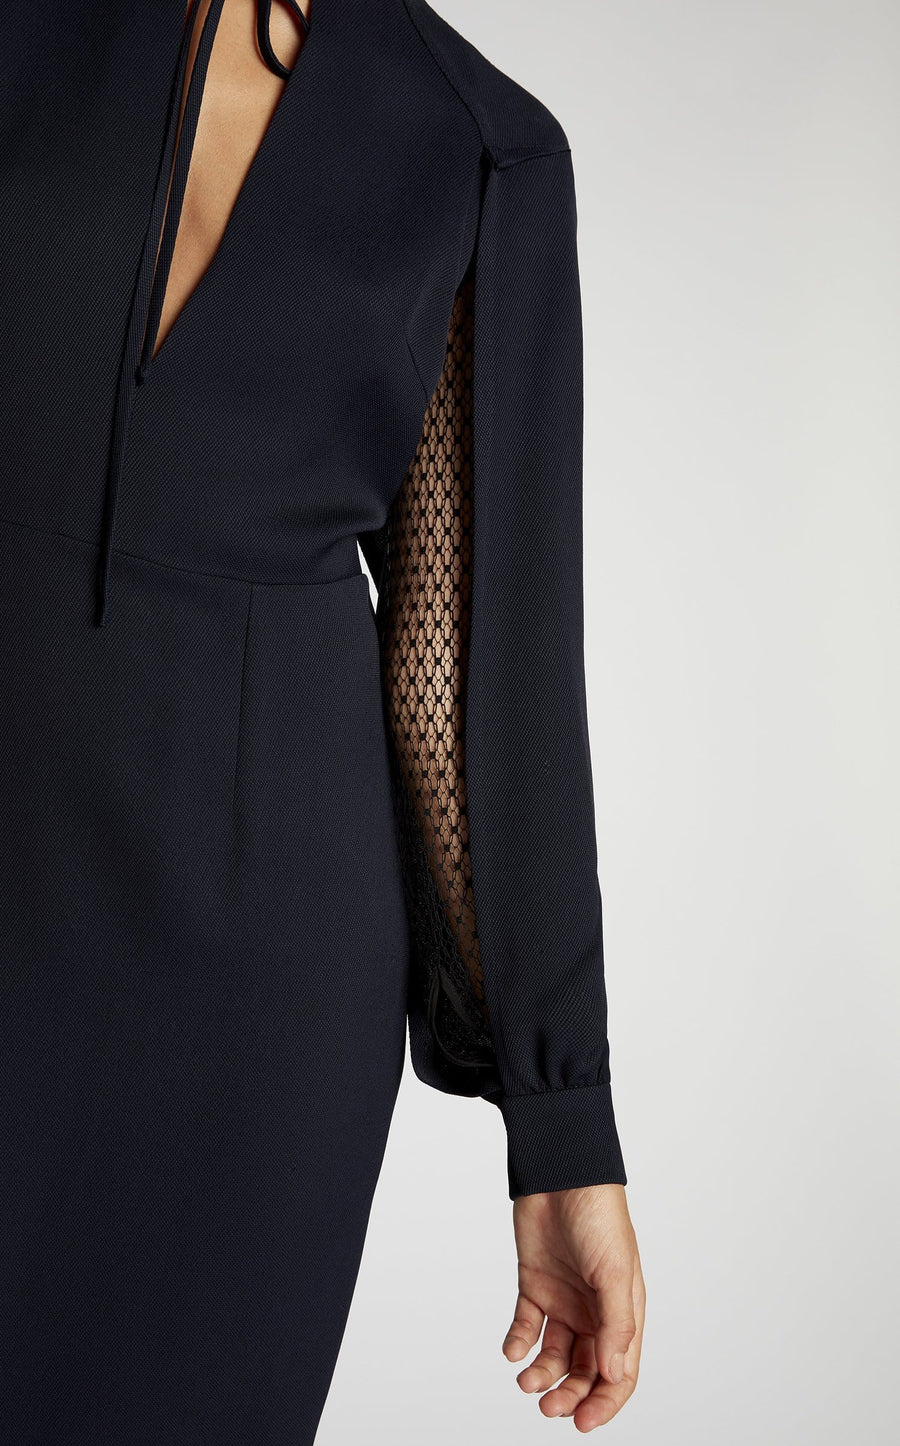 Fort Dress In Navy/Black from Roland Mouret